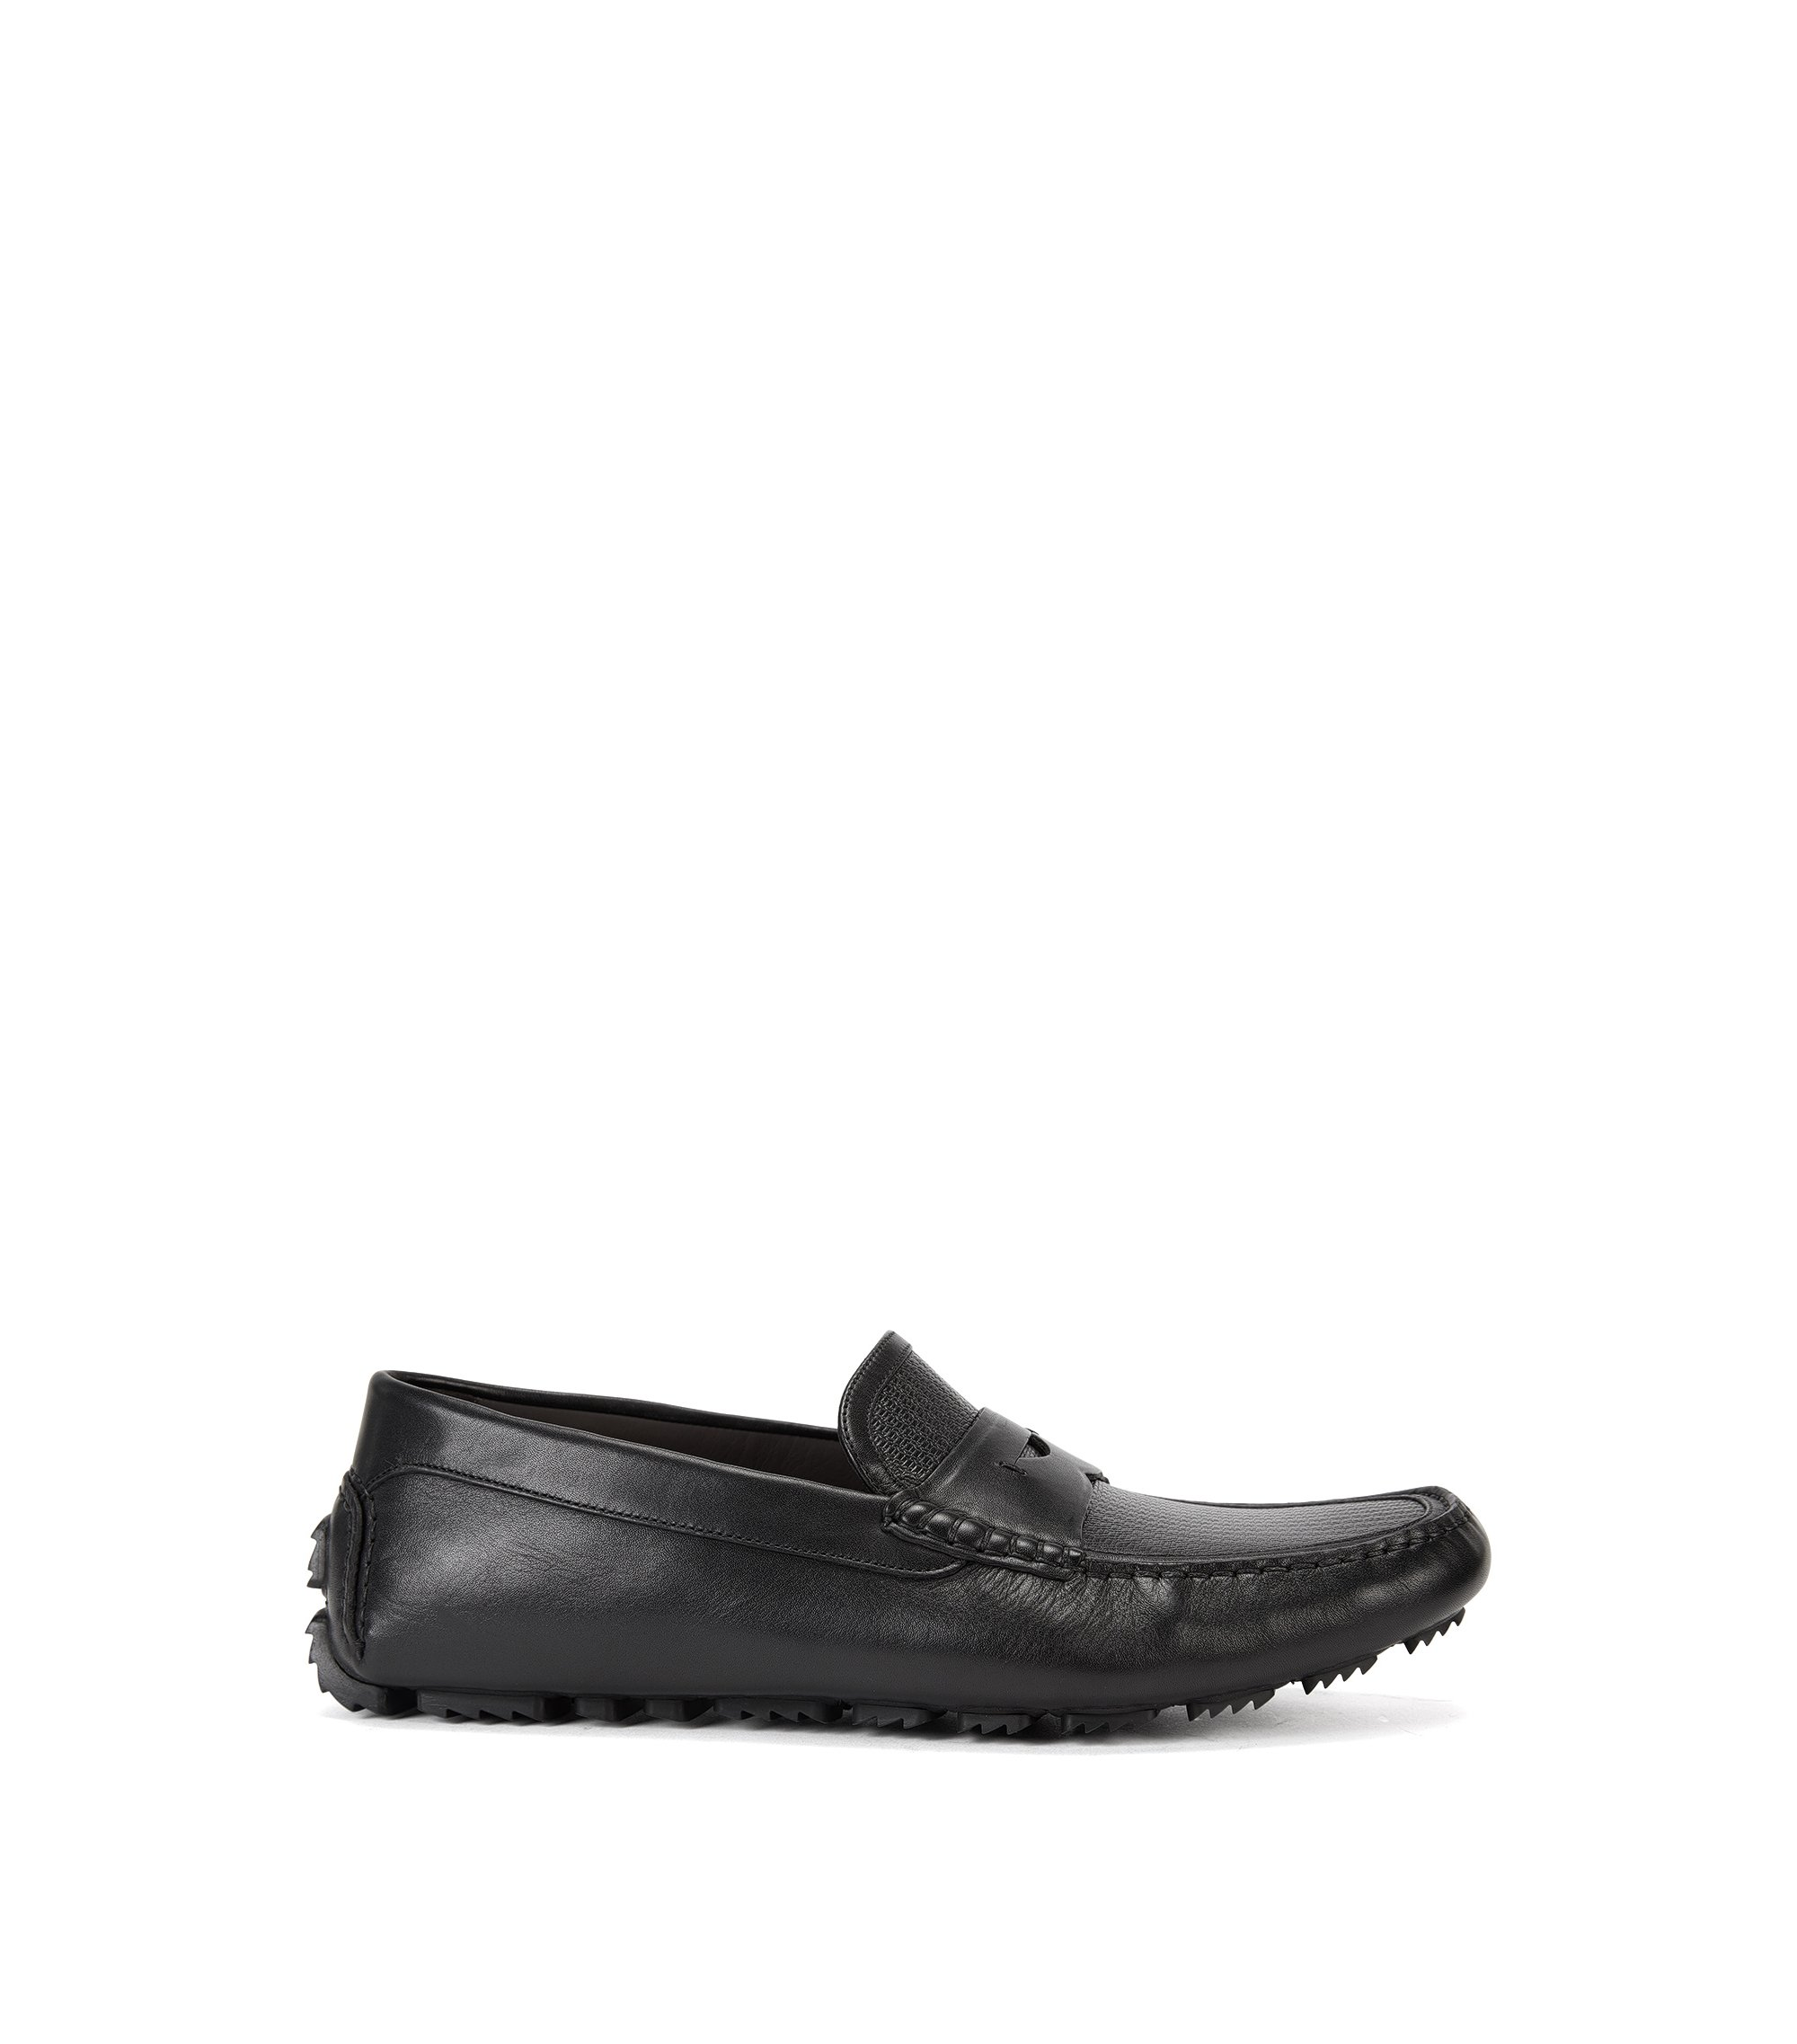 Leather driver shoes with moccasin detail, Black